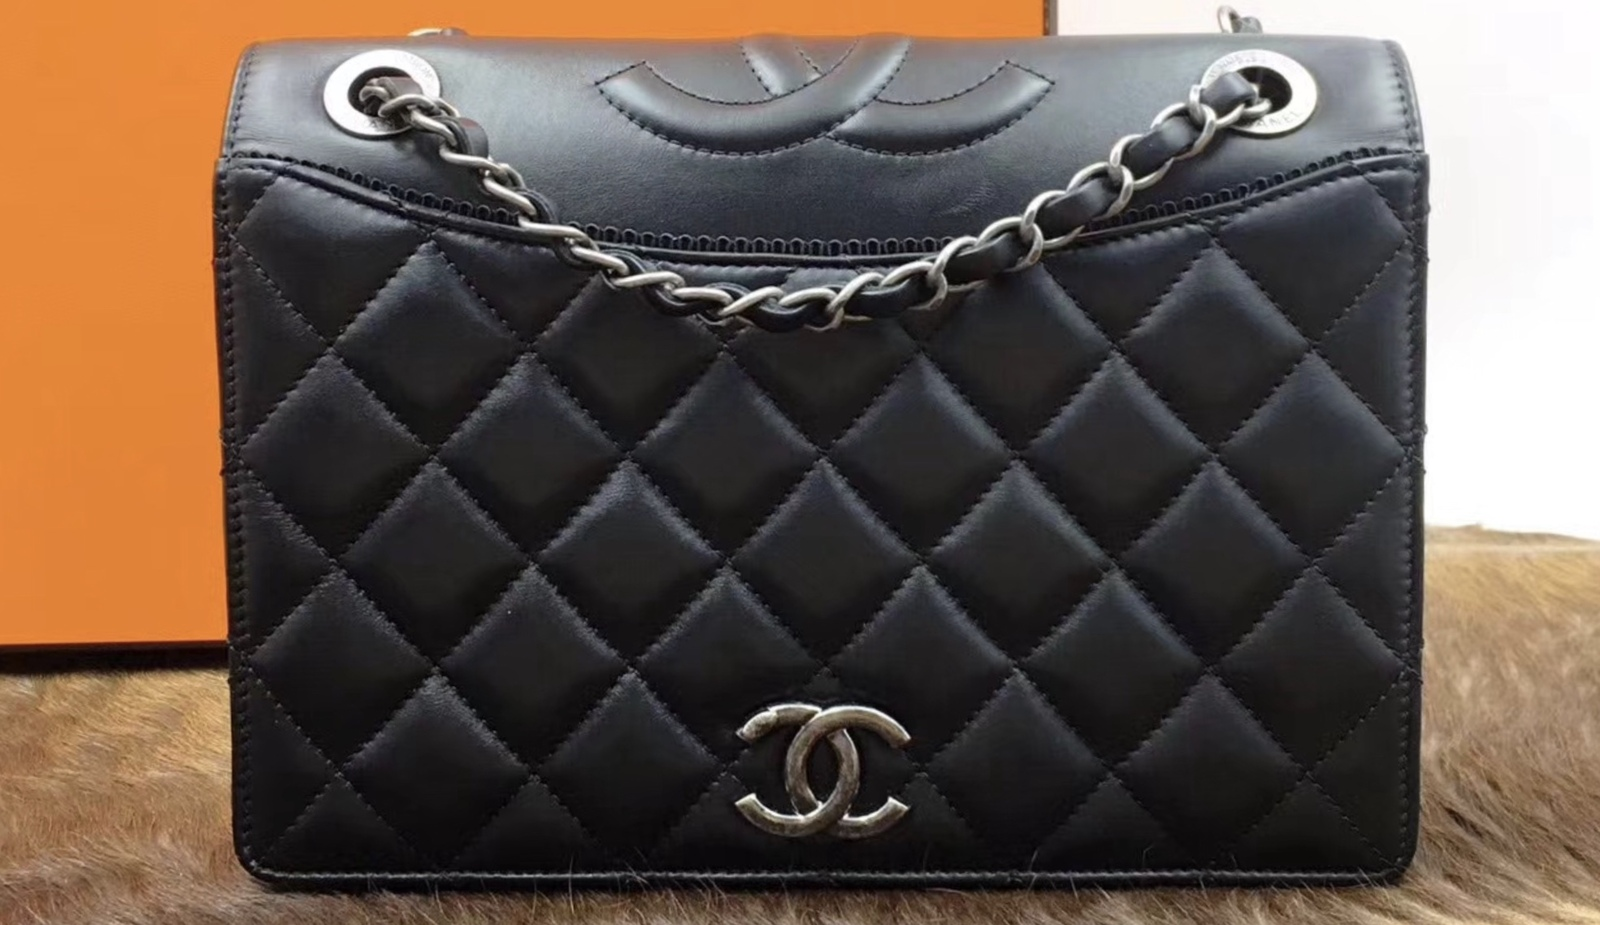 7014c51ecfff BRAND NEW AUTHENTIC CHANEL 2017 BLACK QUILTED LEATHER FLAP BAG ...